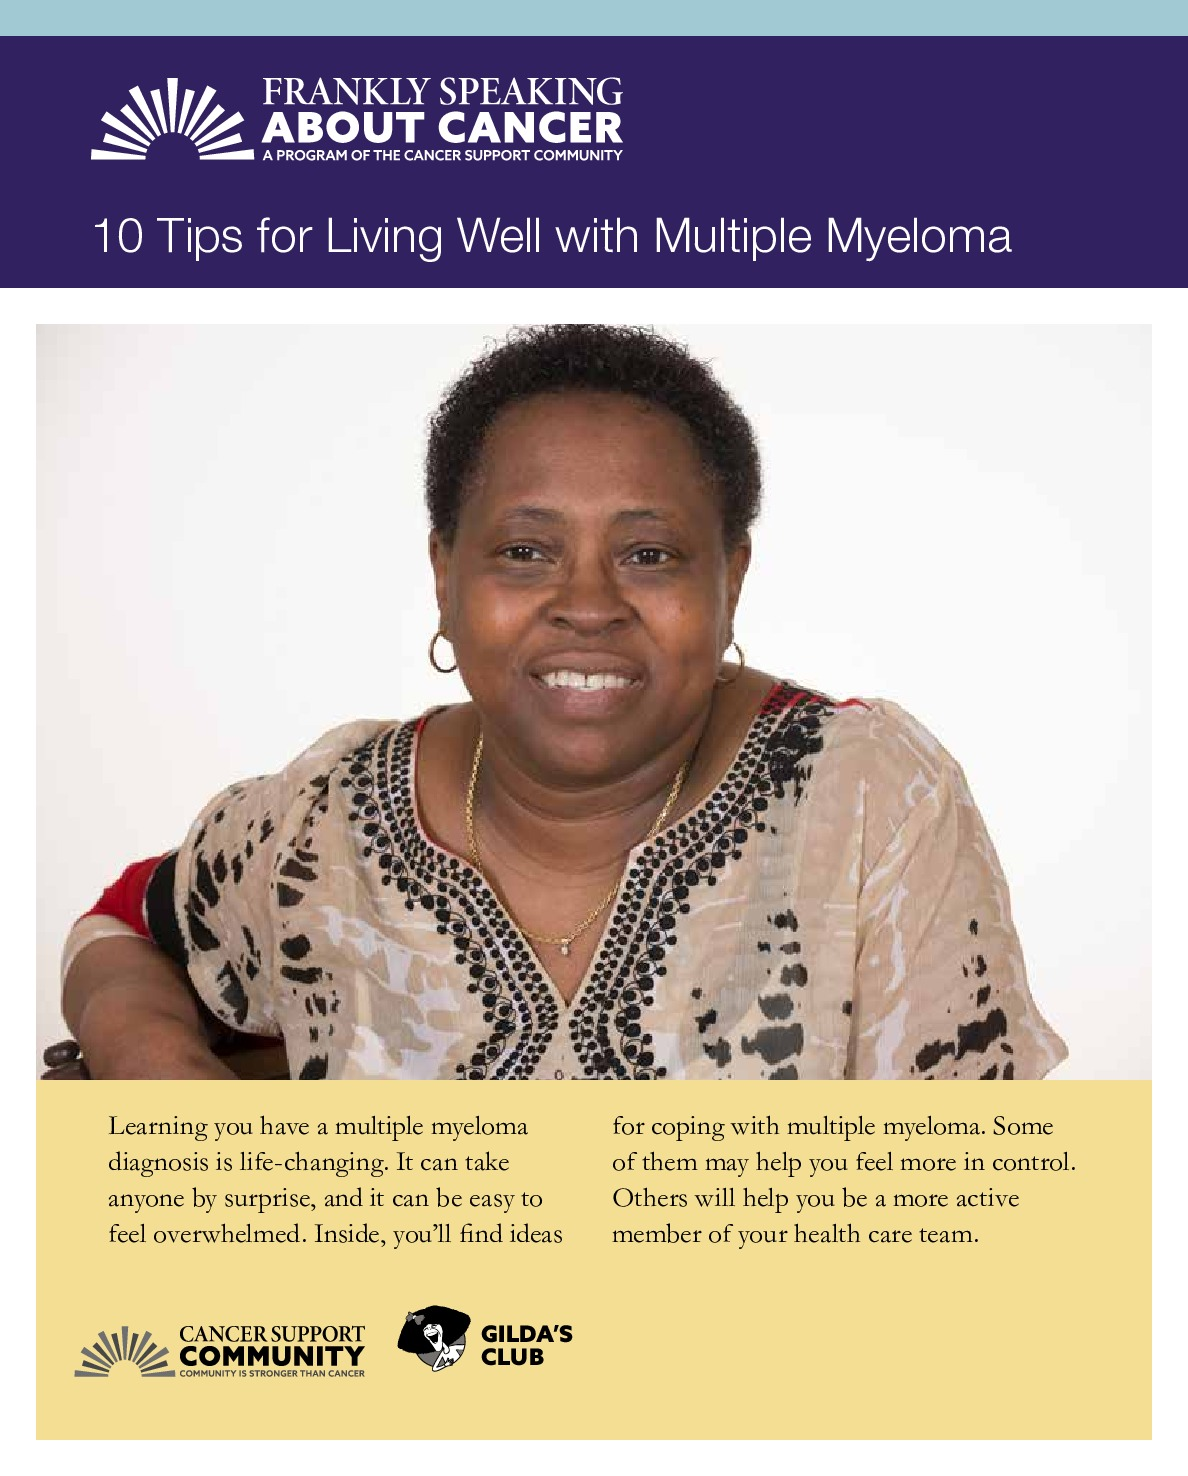 10 Tips for Living Well with Multiple Myeloma